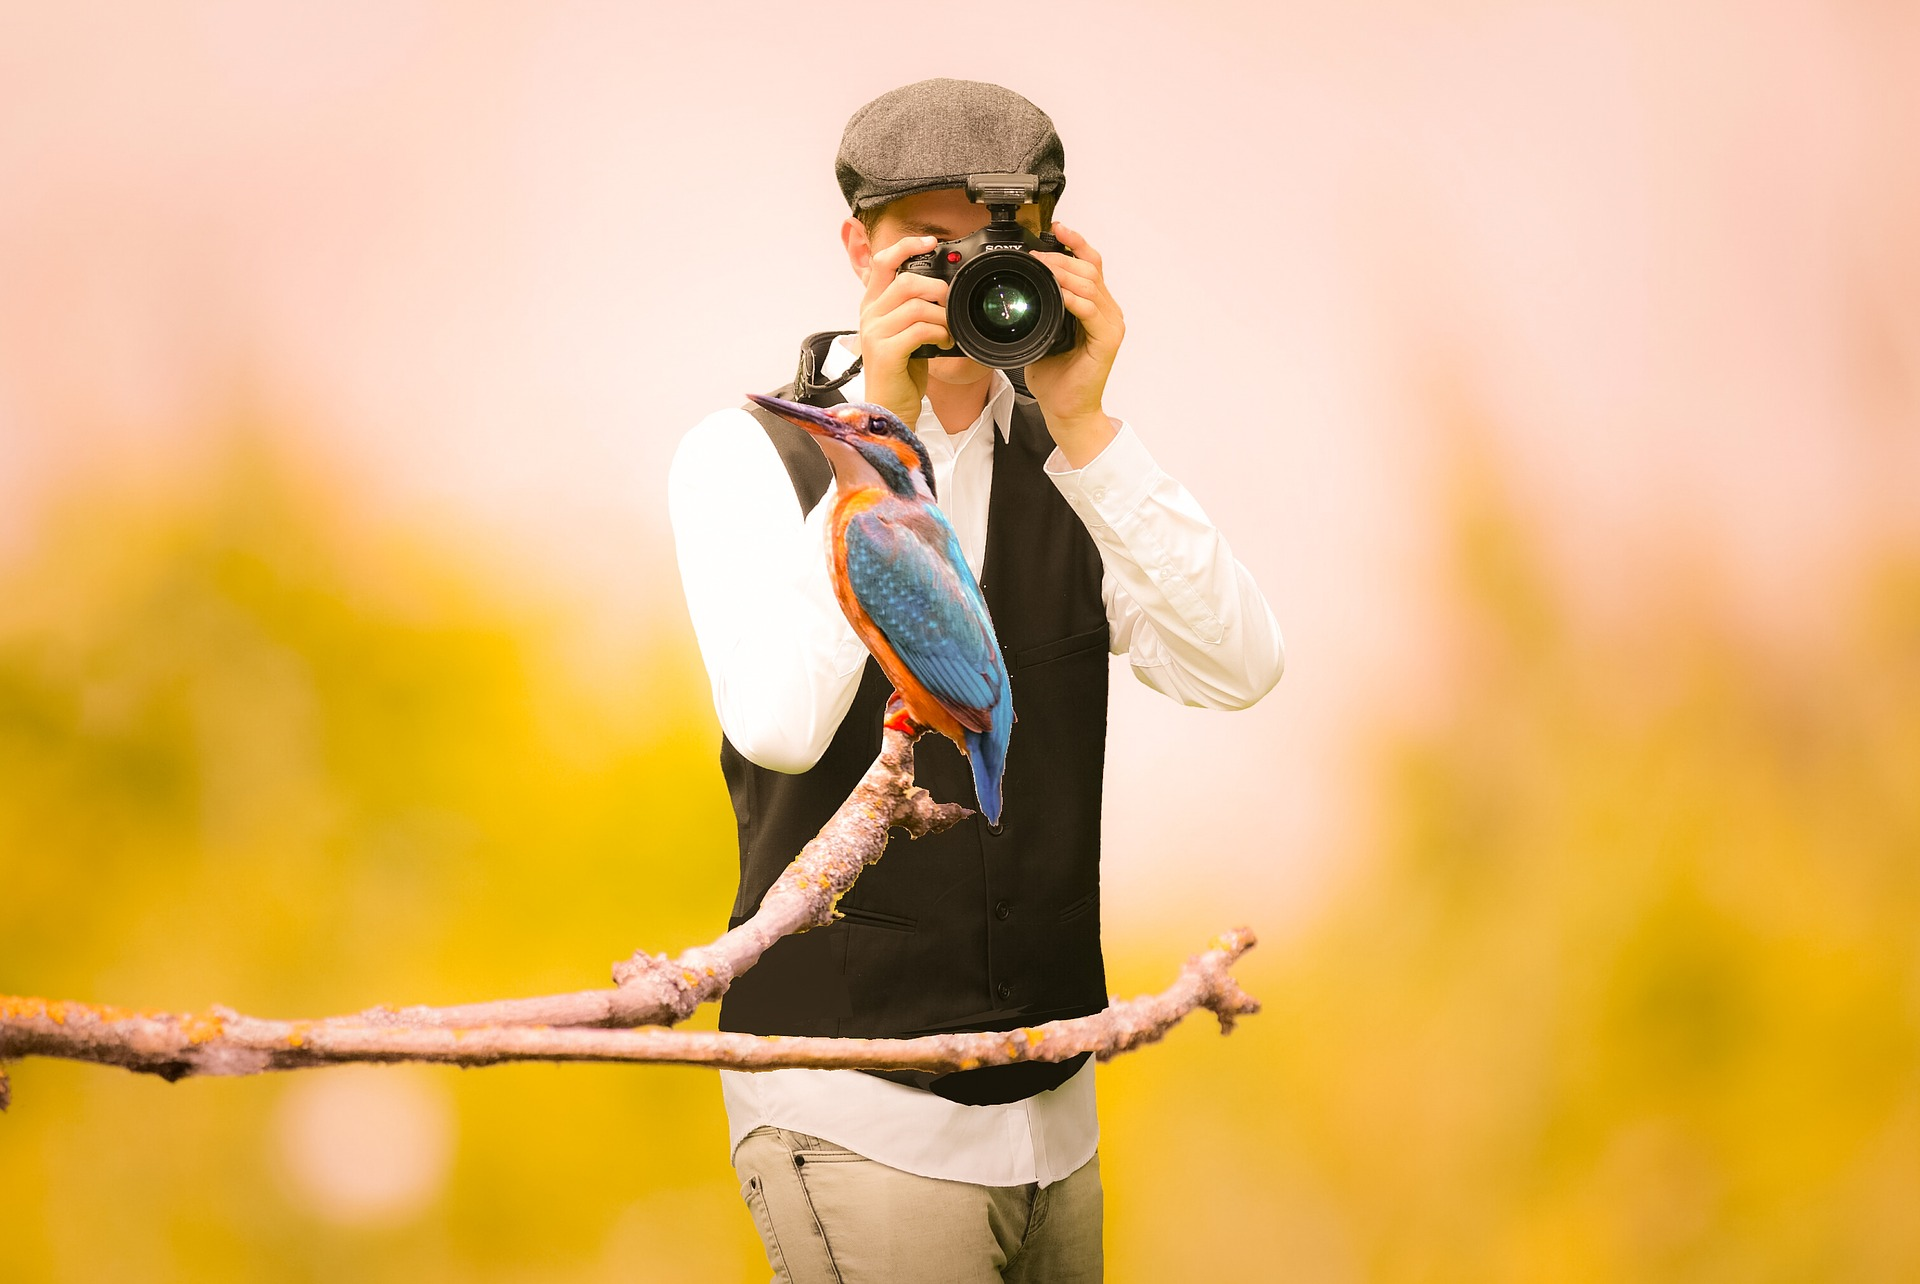 I thought I'd be like this guy. Observing a gigantic hummingbird - a discovery! Hurrah!